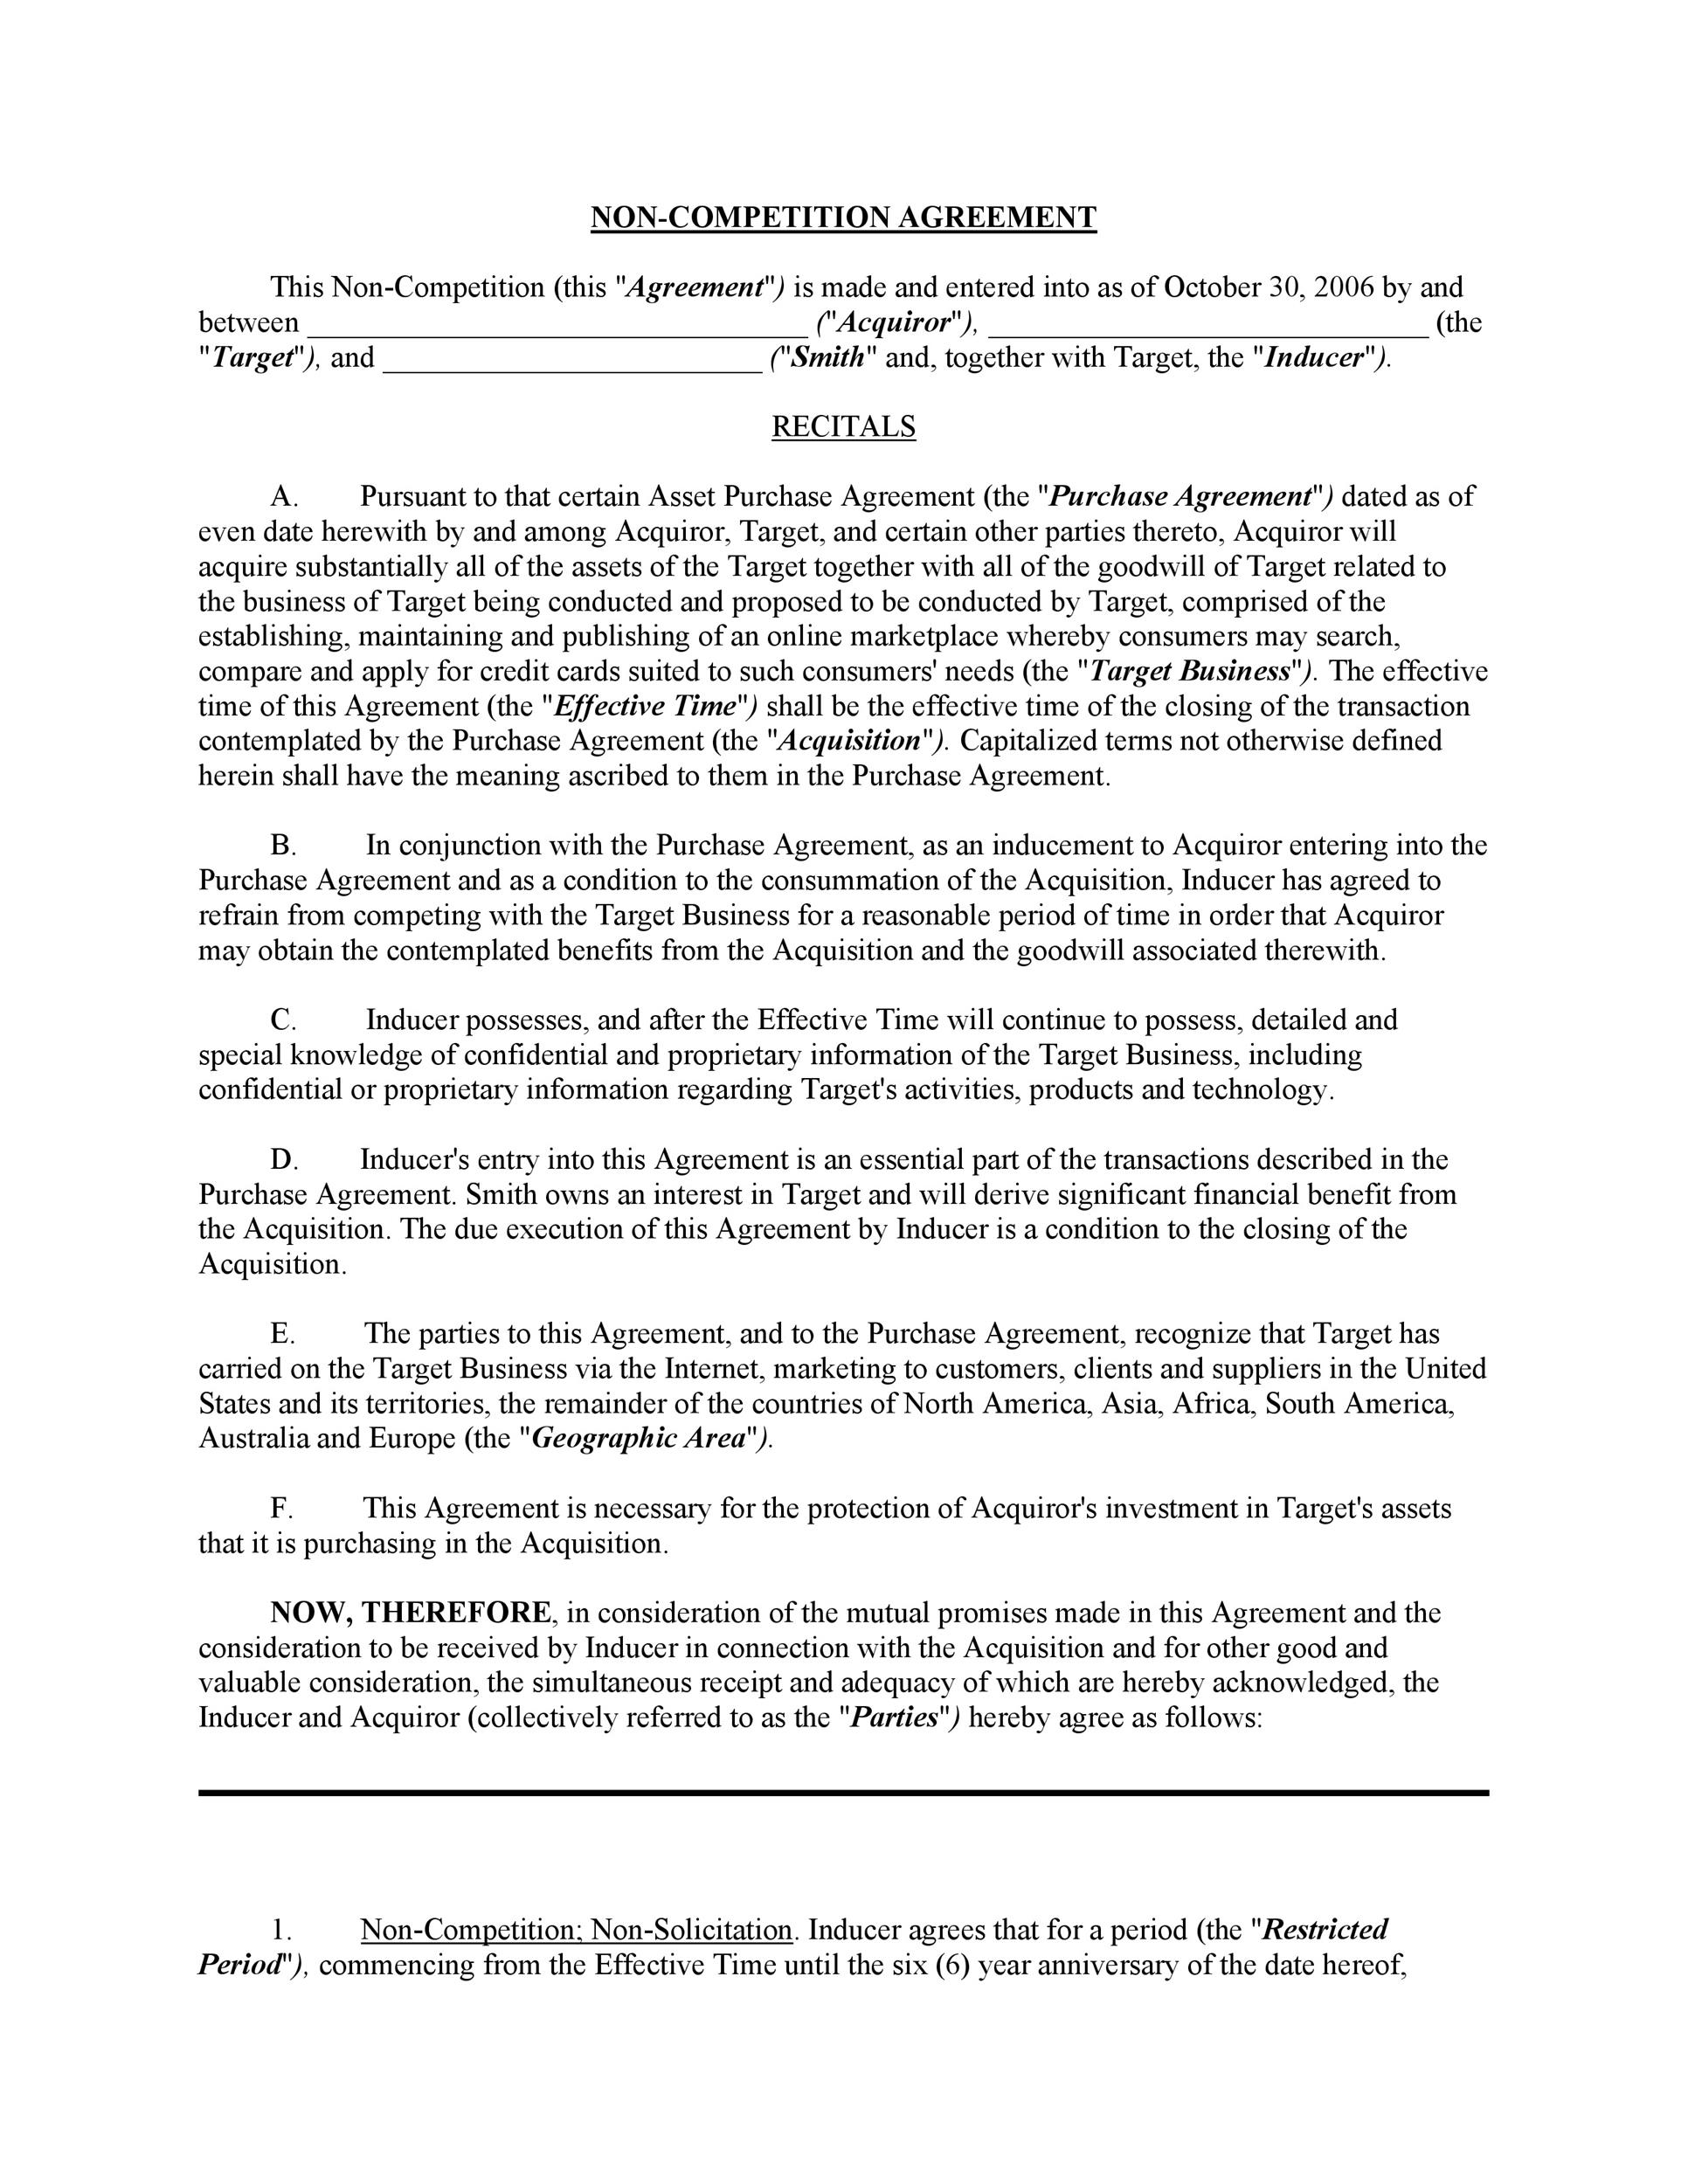 Non-Compete Agreement Template 16